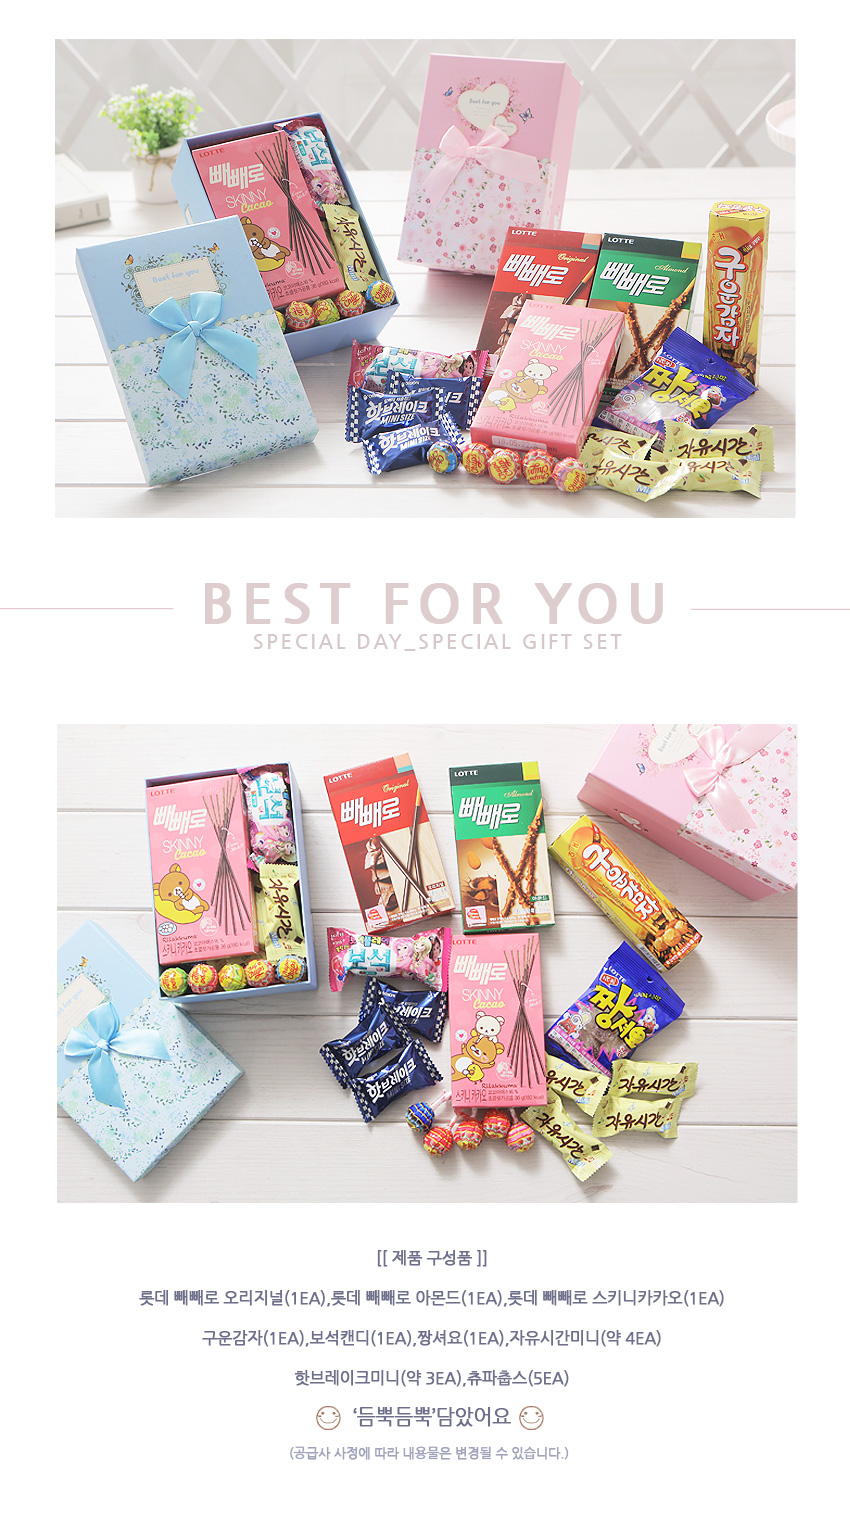 [ Lotte ] Best For You Rectangular Box(Normal)